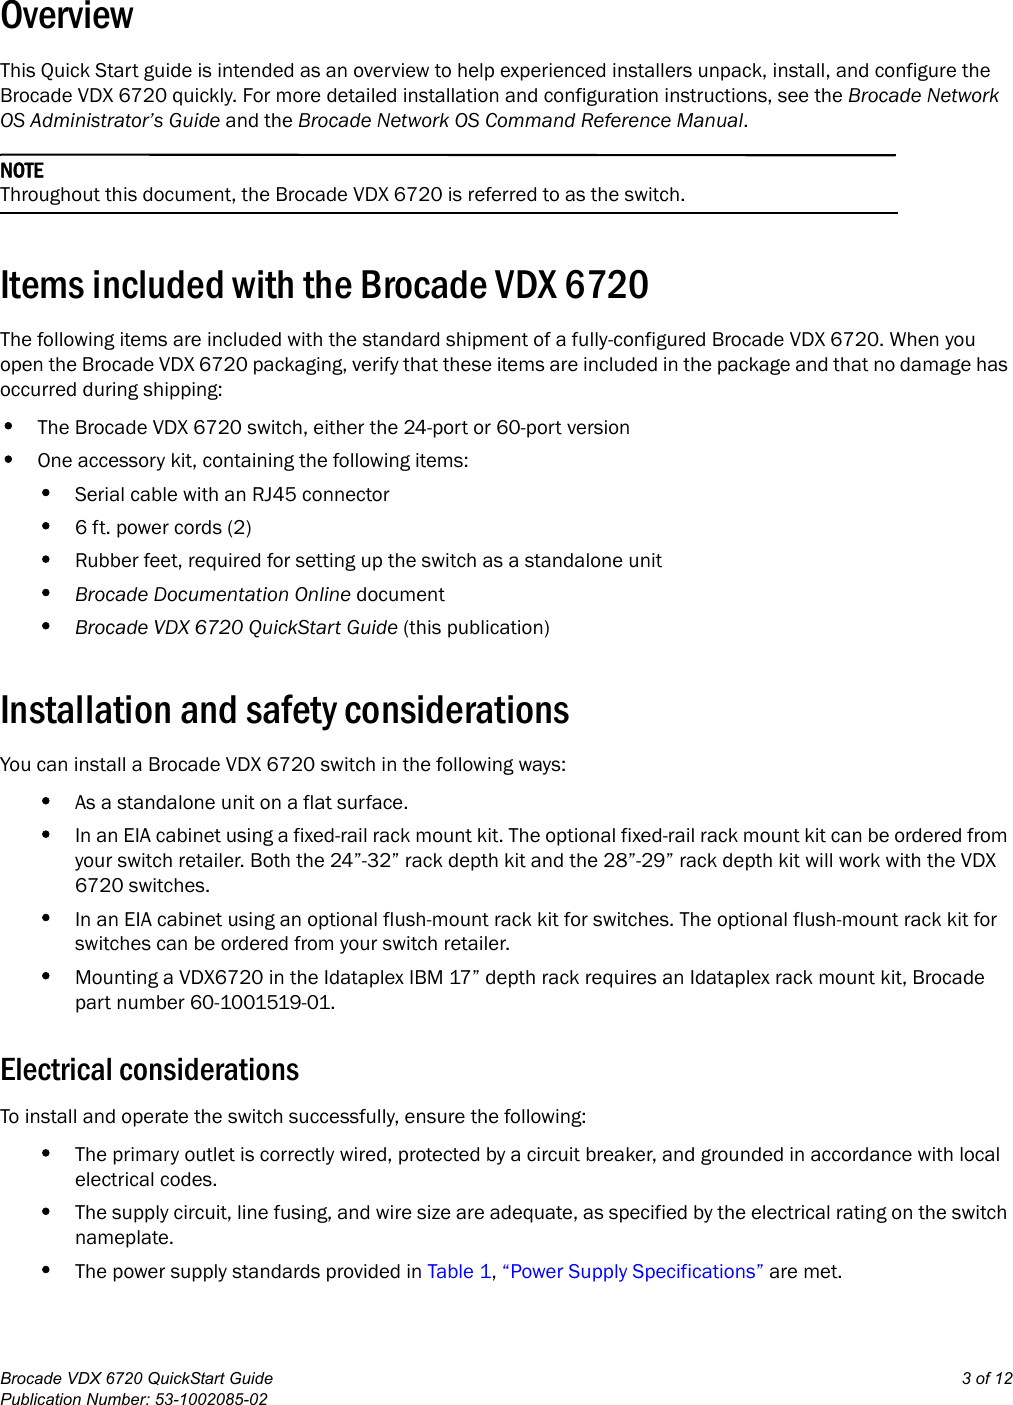 brocade communications systems vdx 6720 users manual quickstartpage 3 of 12 brocade communications systems brocade communications systems